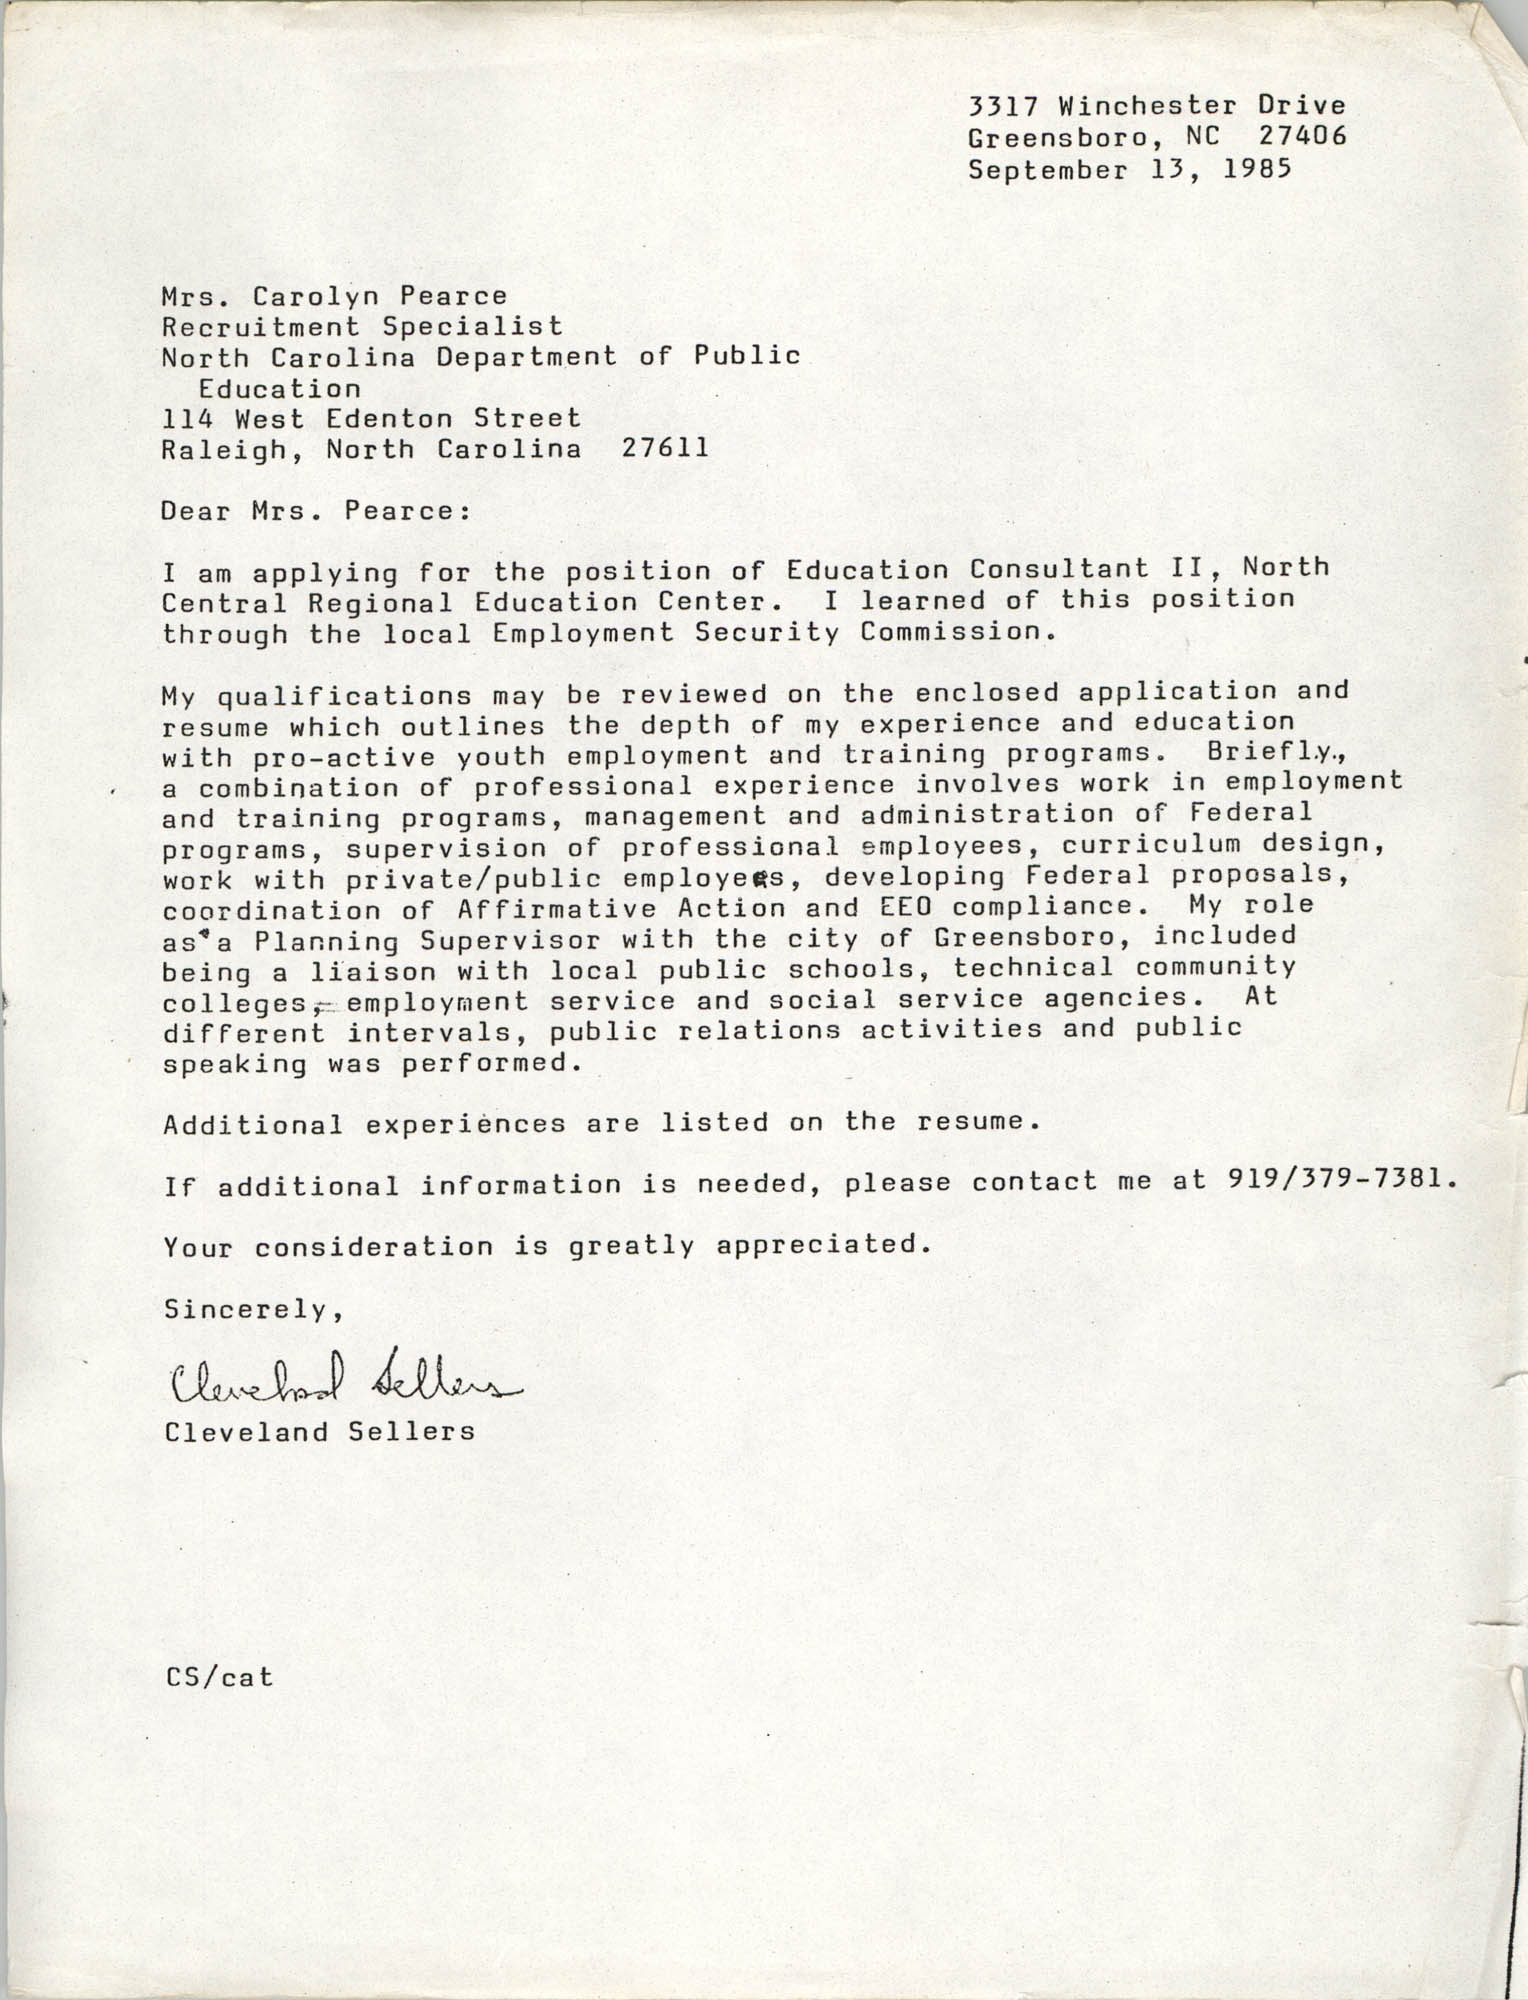 Letter from Cleveland Sellers to Carolyn Pearce, September 13, 1985